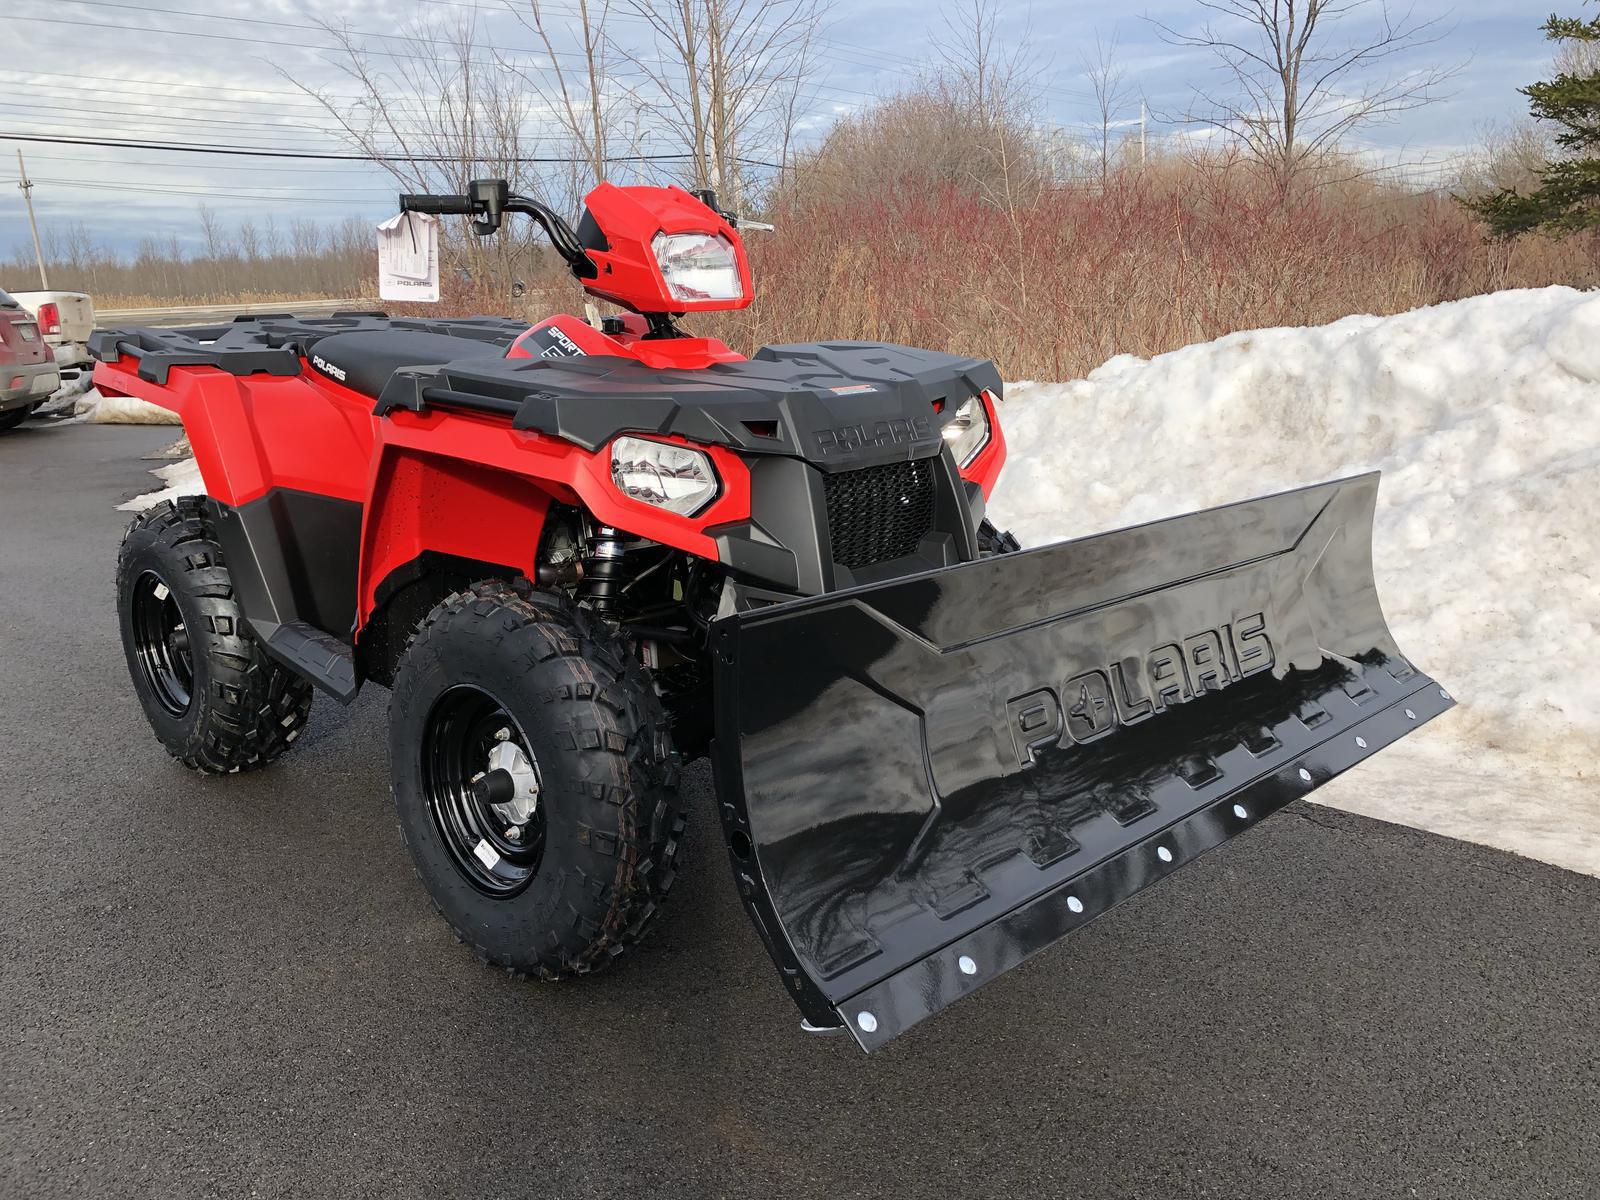 2018 Polaris Industries Sportsman 570 Plow Pkg. Plus Freight. Avail ...